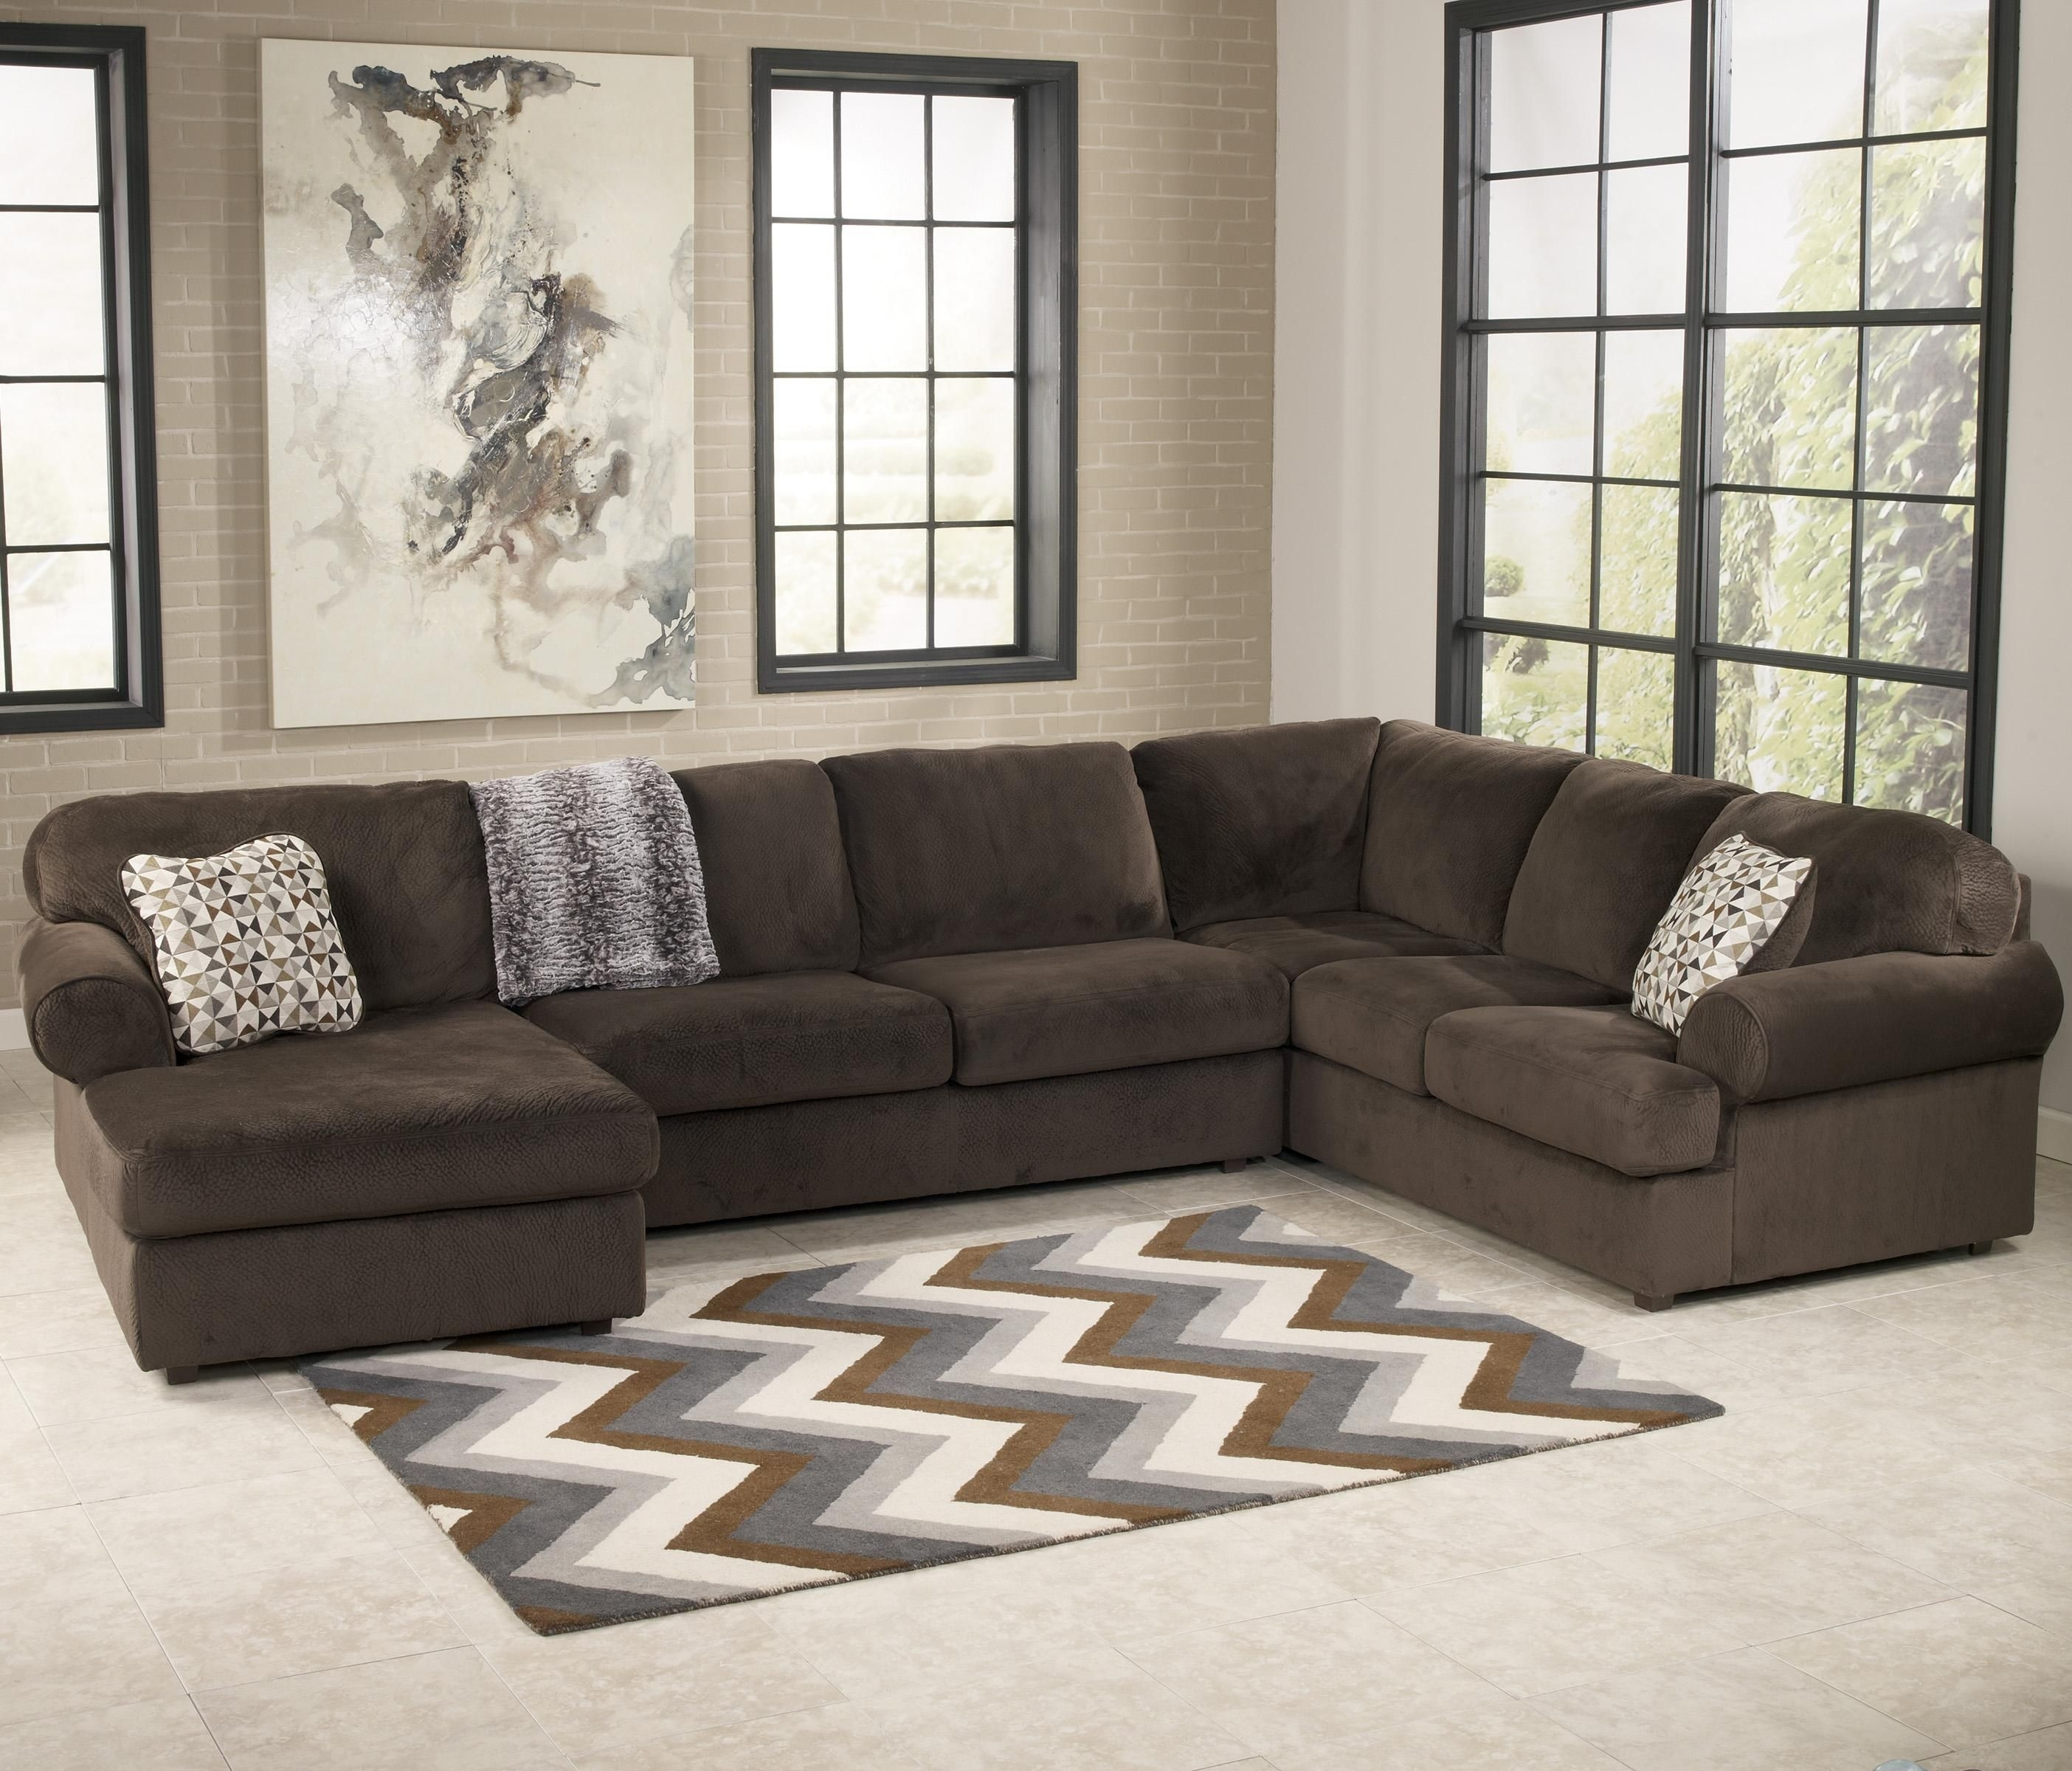 Jessa Place - Chocolate Casual Sectional Sofa With Left Chaise regarding Jackson Ms Sectional Sofas (Image 4 of 10)